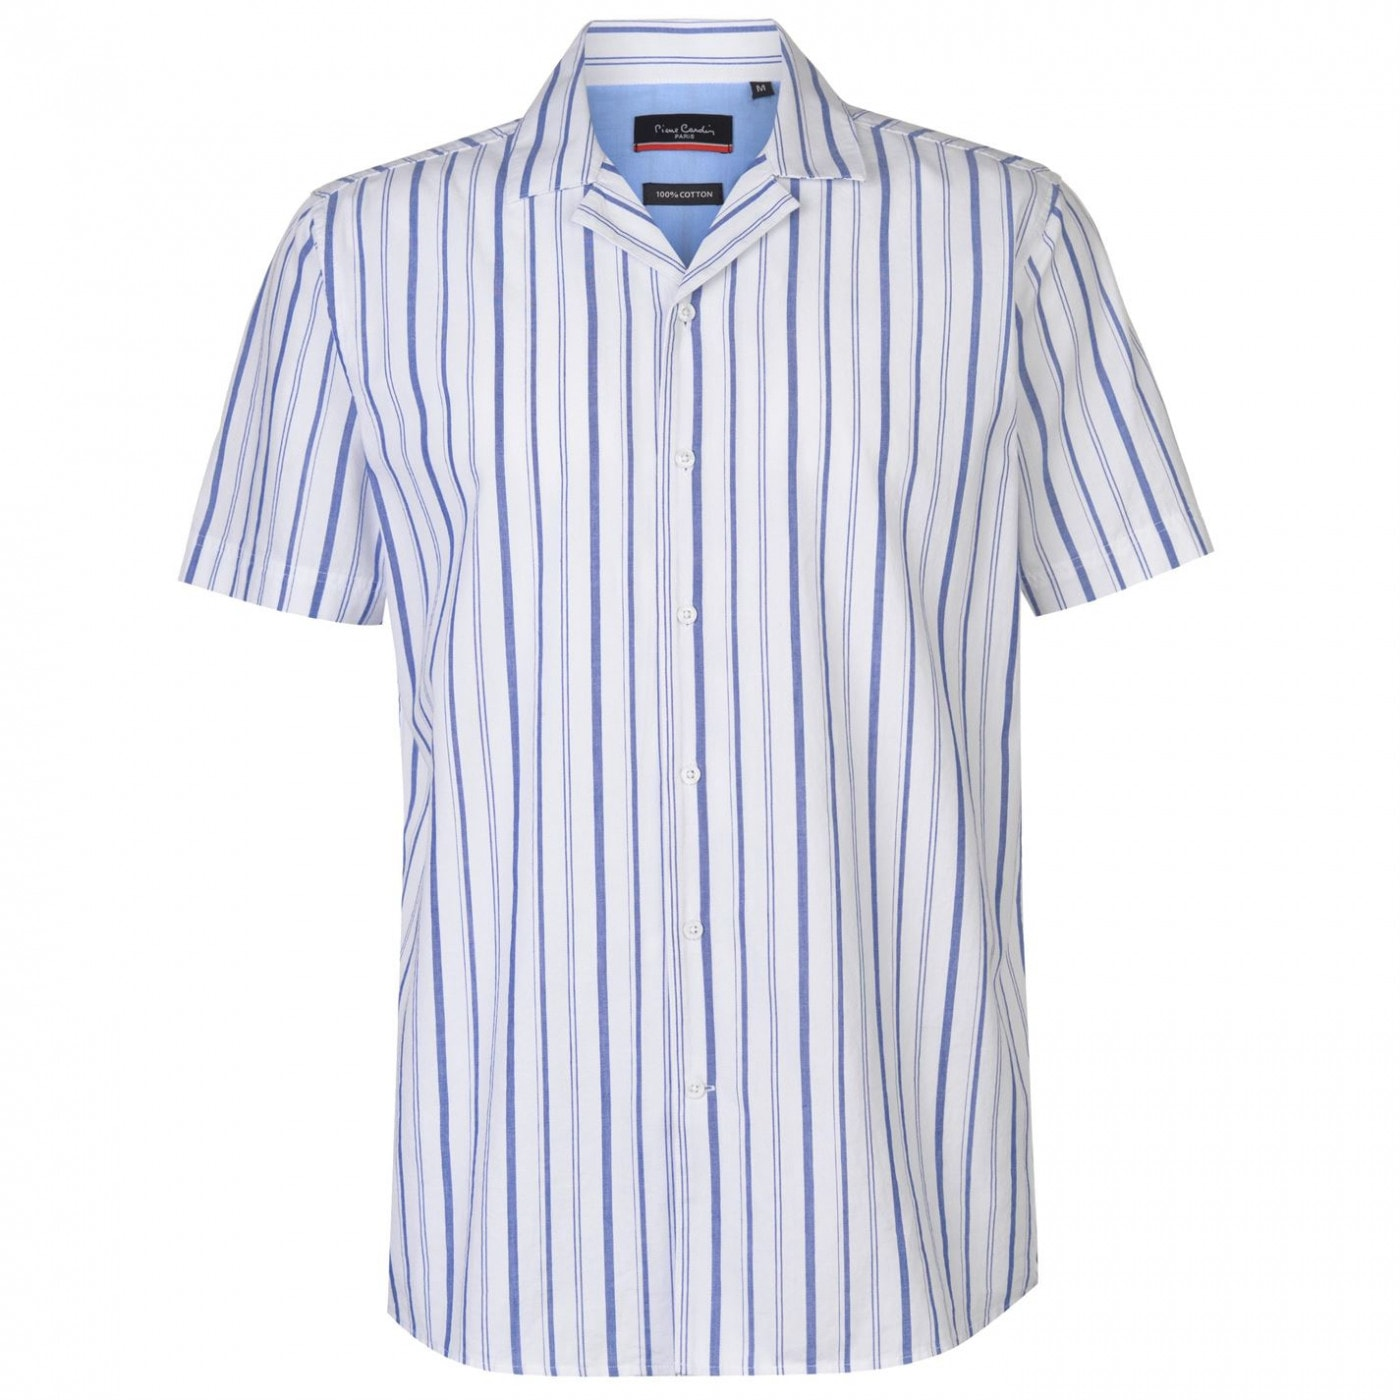 Men's Shirt Pierre Cardin Reverse Stripe